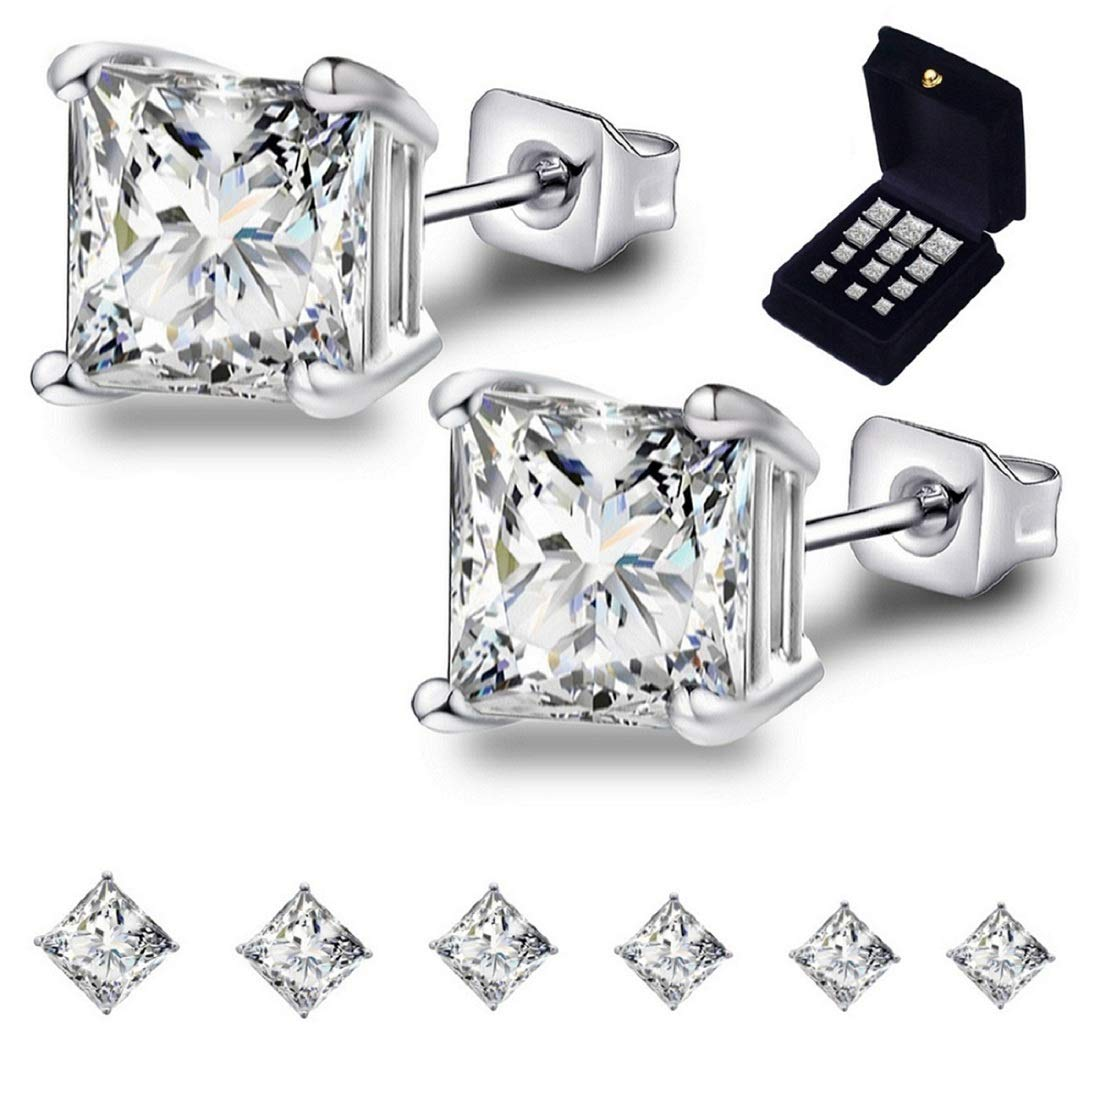 Anni Coco 18k White Gold Plated Stainless Steel Square Princess Cut Clear Cubic Zirconia Stud Earrings Set, 3mm-8mm 6 Pairs by Anni Coco